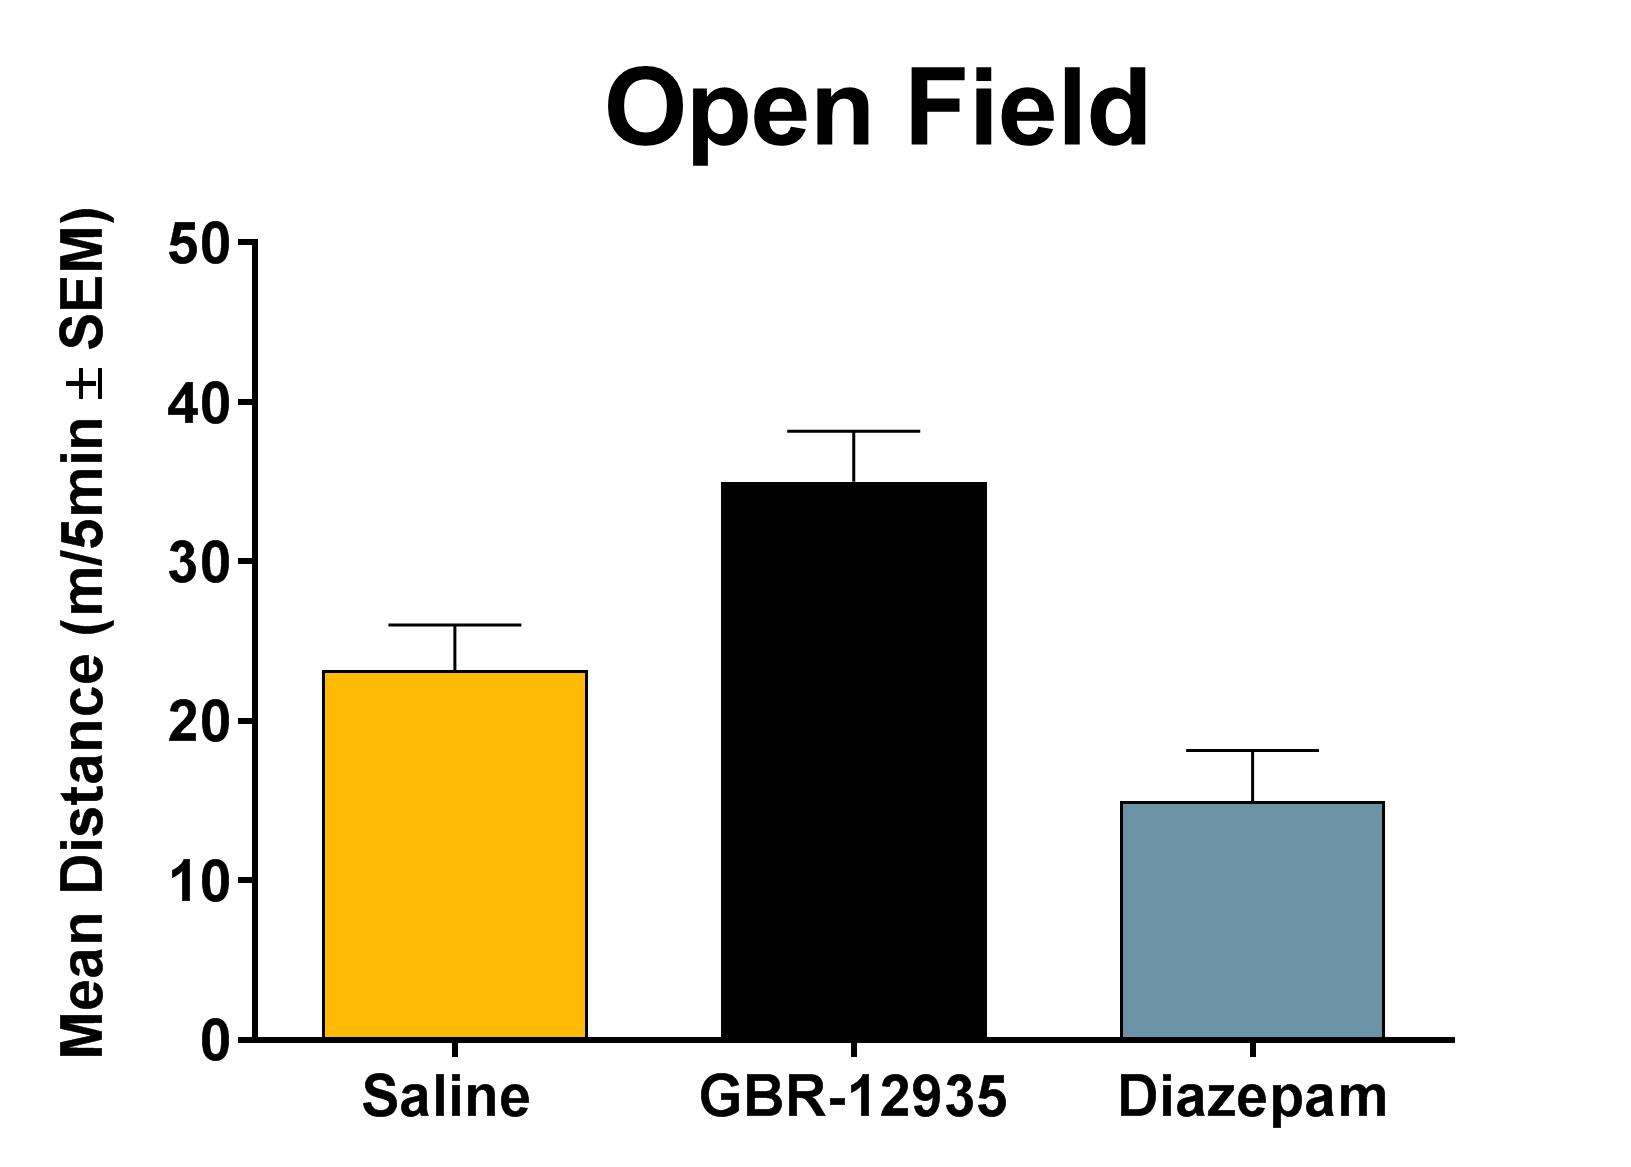 Treatments that stimulate or depress activity can be assessed using the open field test. This test has been validated by examining GBR-12935 induced increases in activity and diazepam induced decreases in activity. The graph above shows summed distance traveled in the open field following treatment. These data demonstrate the sensitivity of the task in distinguishing activity levels.